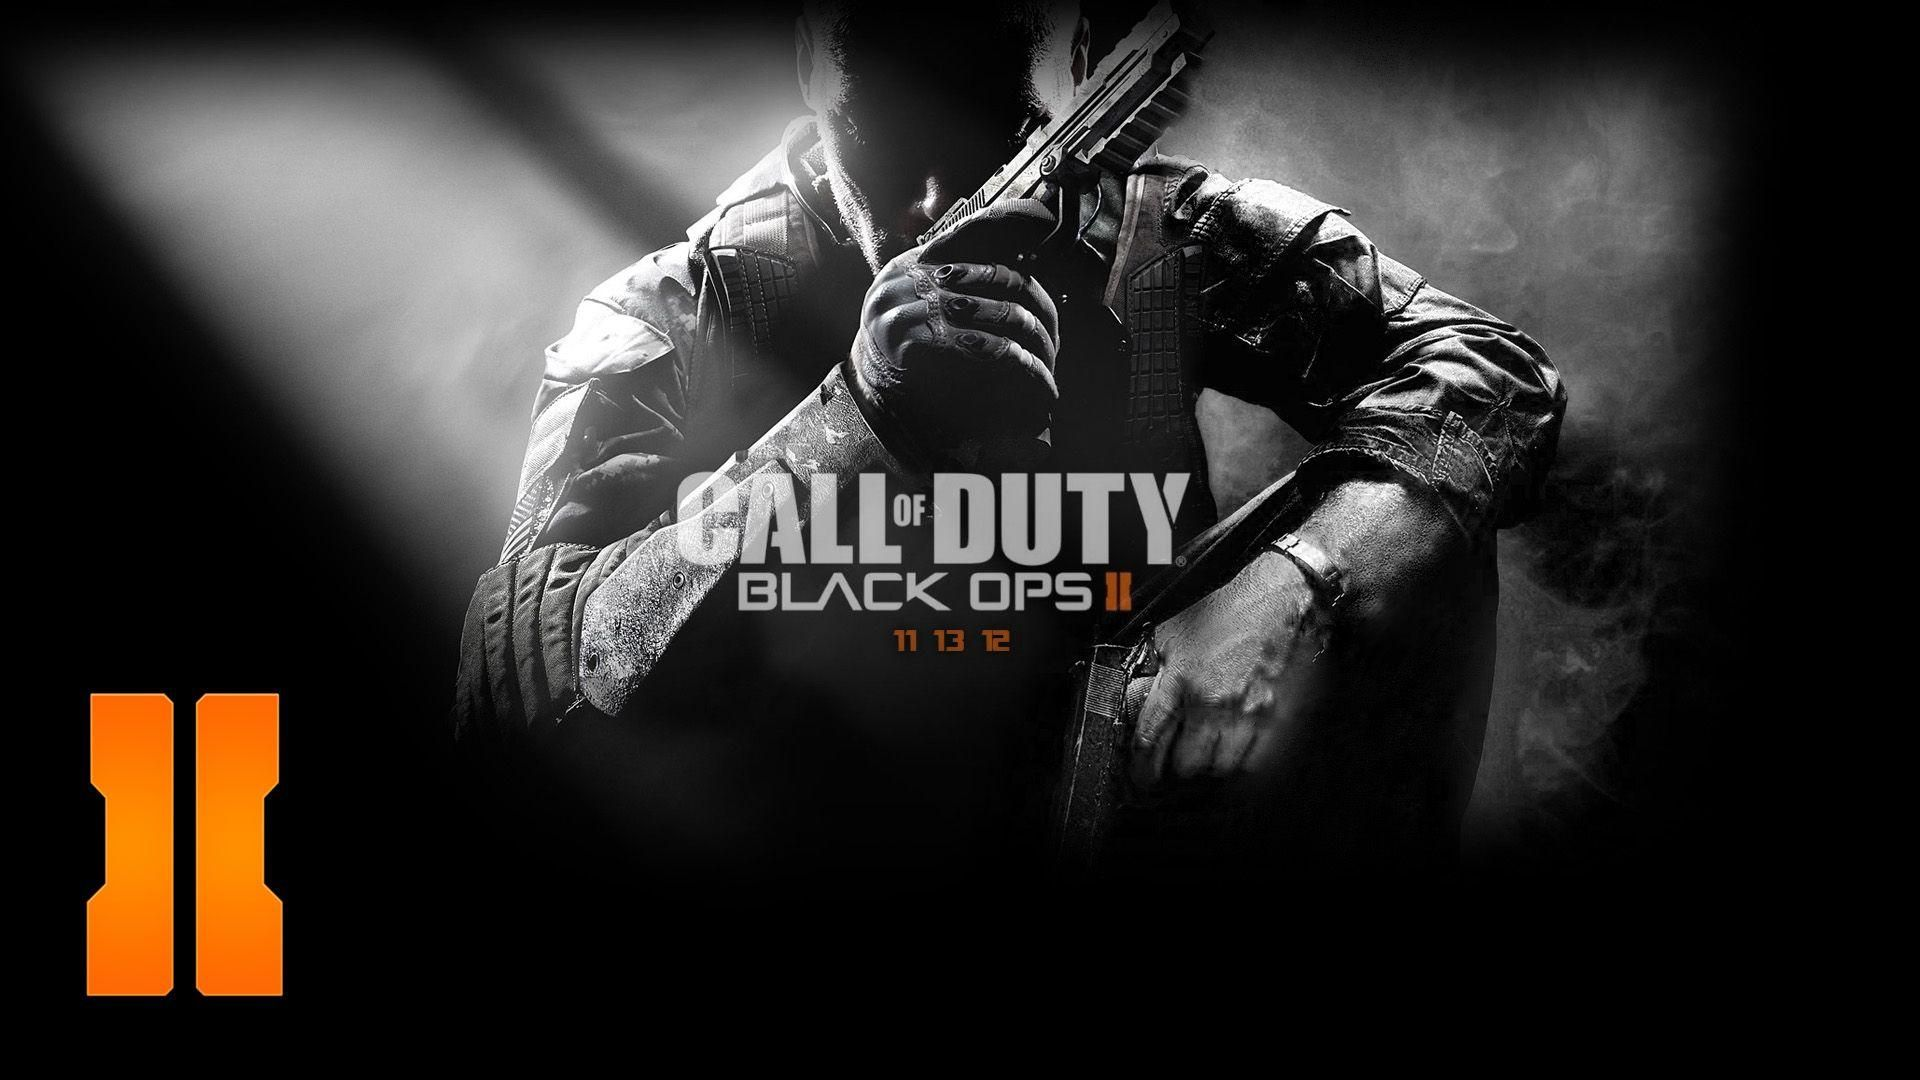 12 Games Like Call Of Duty 2 3 4 5 March 2020 Con Imagenes